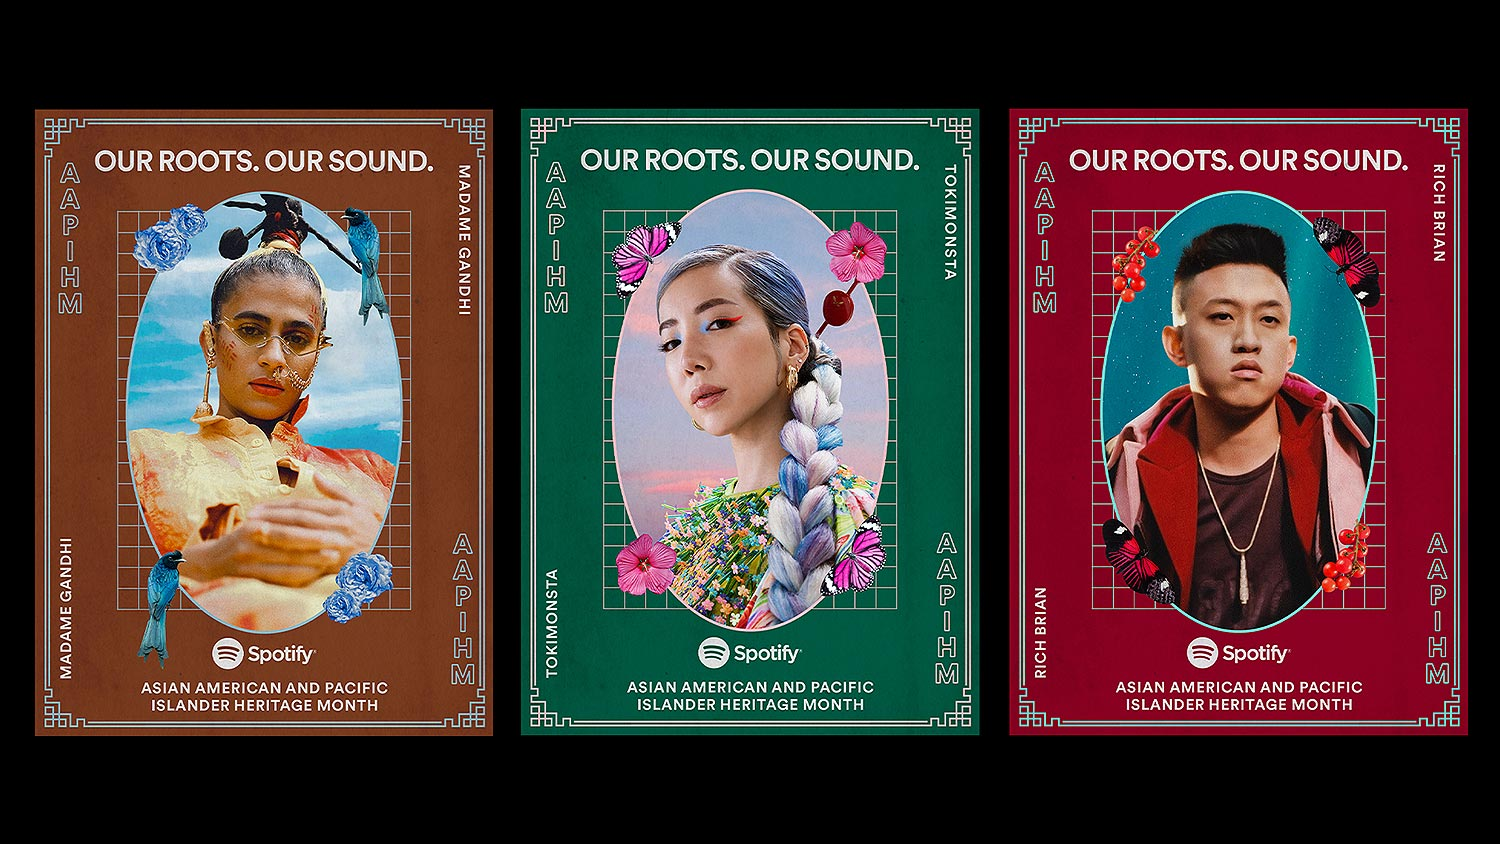 Spotify Launches AAPI Hub